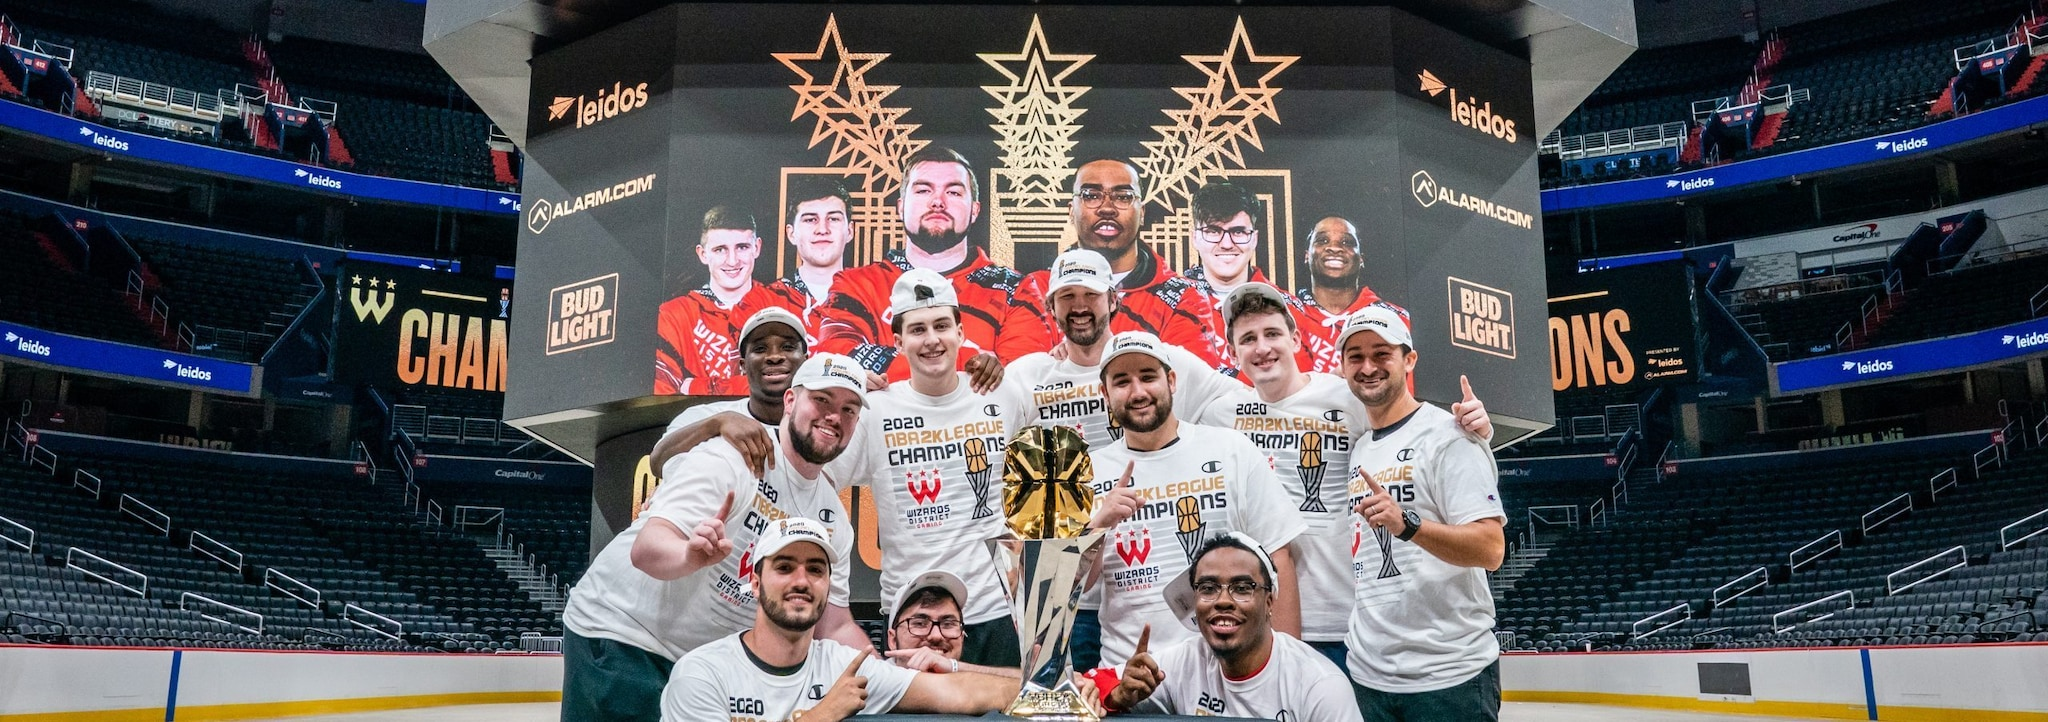 Wizards District Gaming Wins NBA 2K League Championship